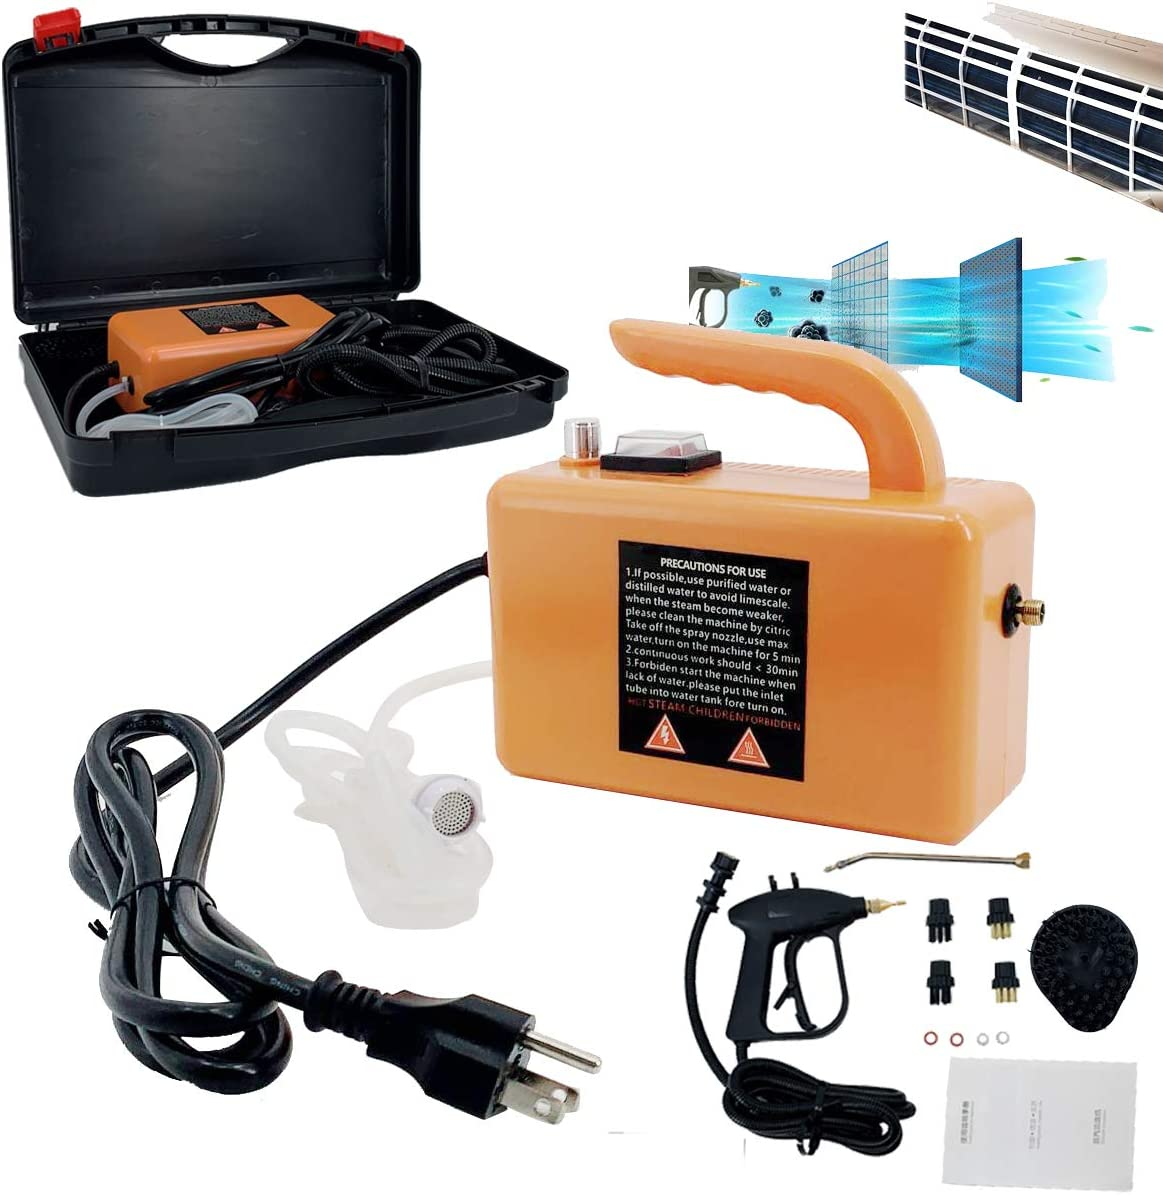 DOMINTY 110V 1700W High Temperature Pressurized Steam Cleaner Handheld Portable Steam Cleaning Machine Automatic Pumping for Kitchen Toilet Car Seat, Orange